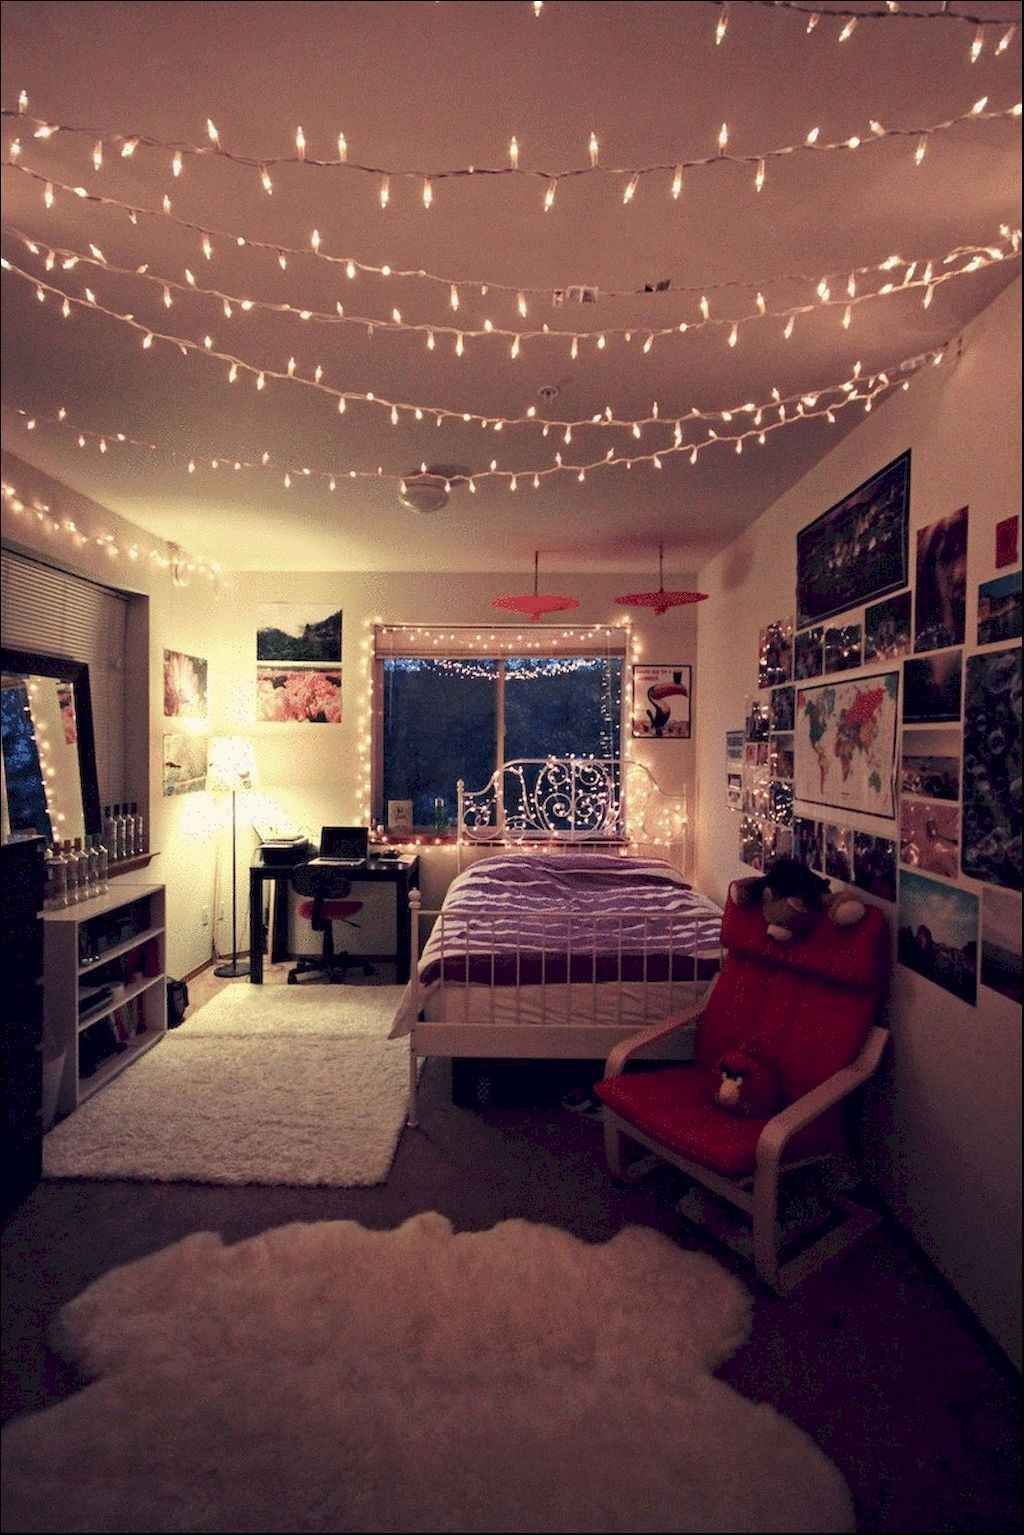 Pin On College Apartments College kid bedroom ideas